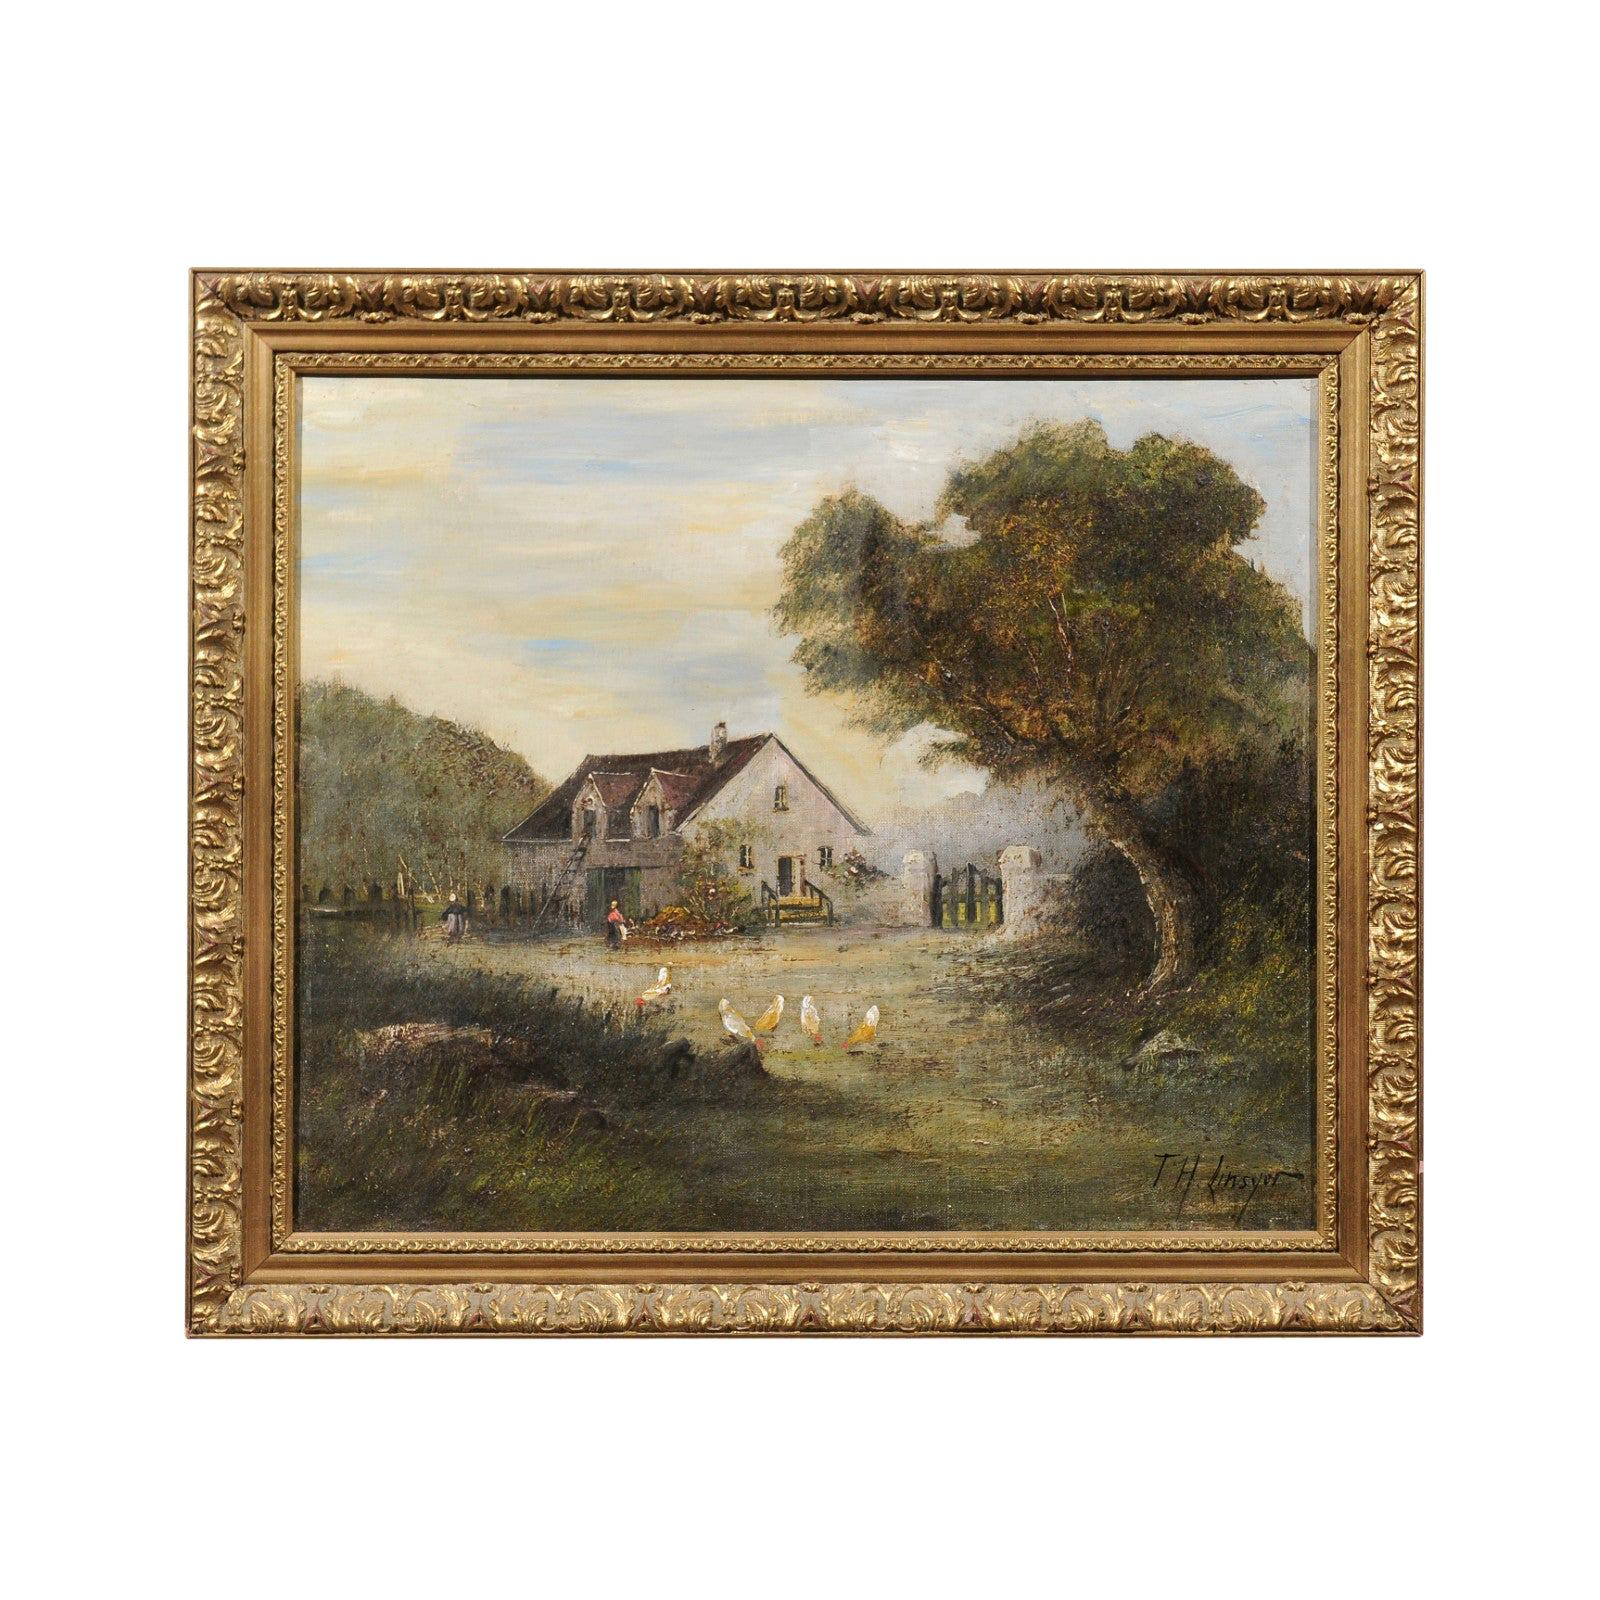 French Barbizon School Framed Oil on Canvas Pastoral Painting Signed Th. Linsyer